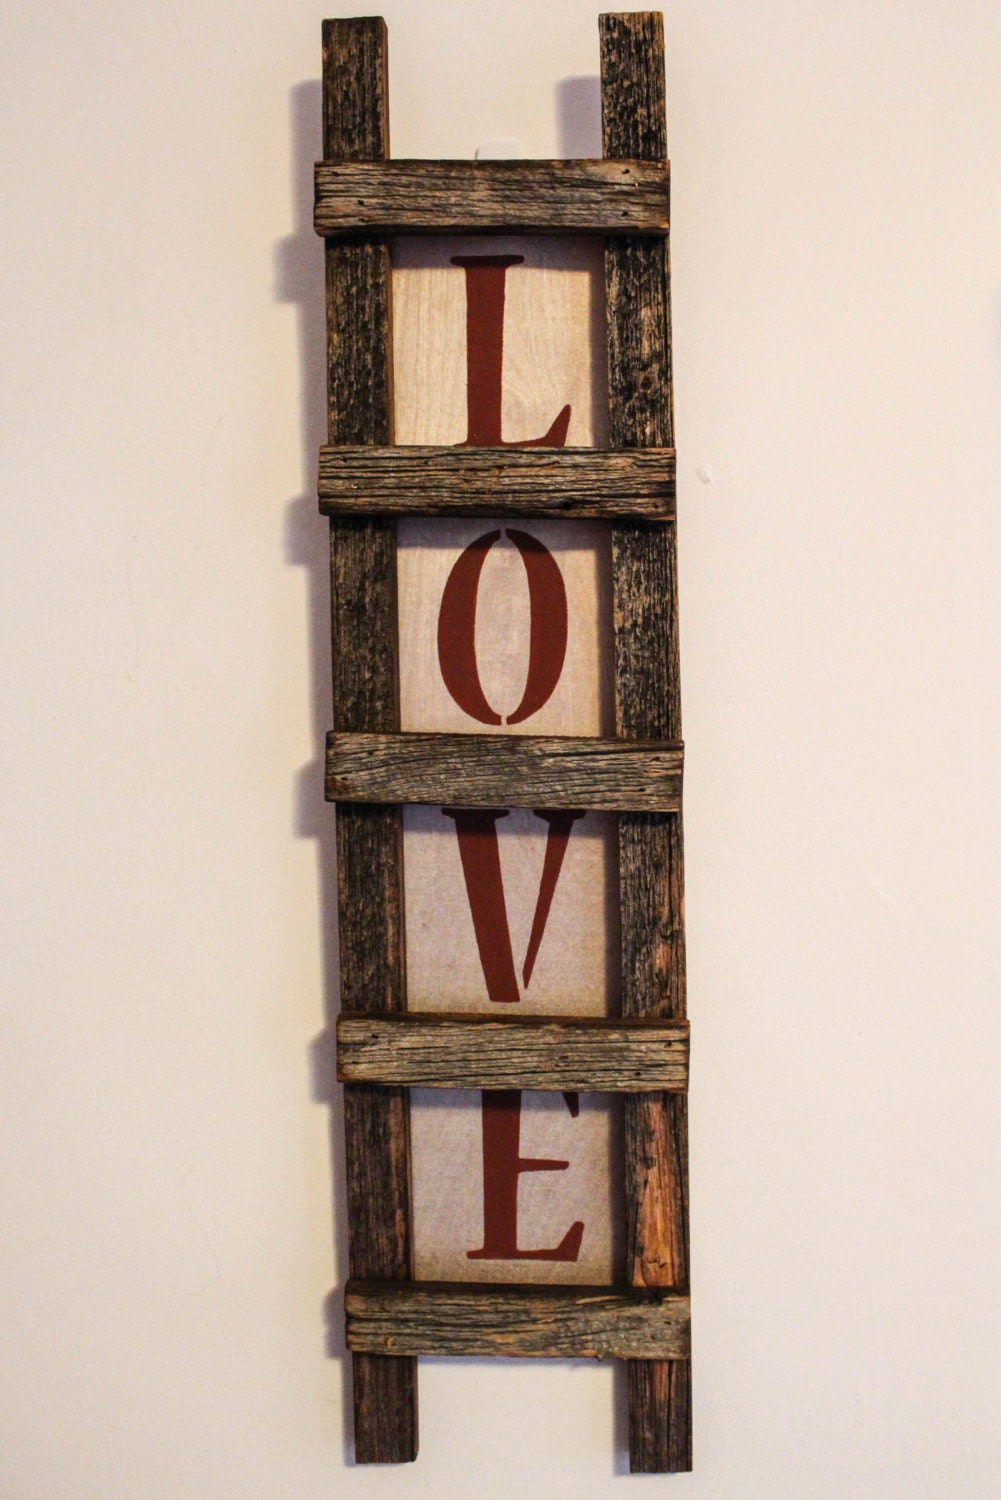 Ladder Decor On Wall : Love ladder wall decor quote antique home